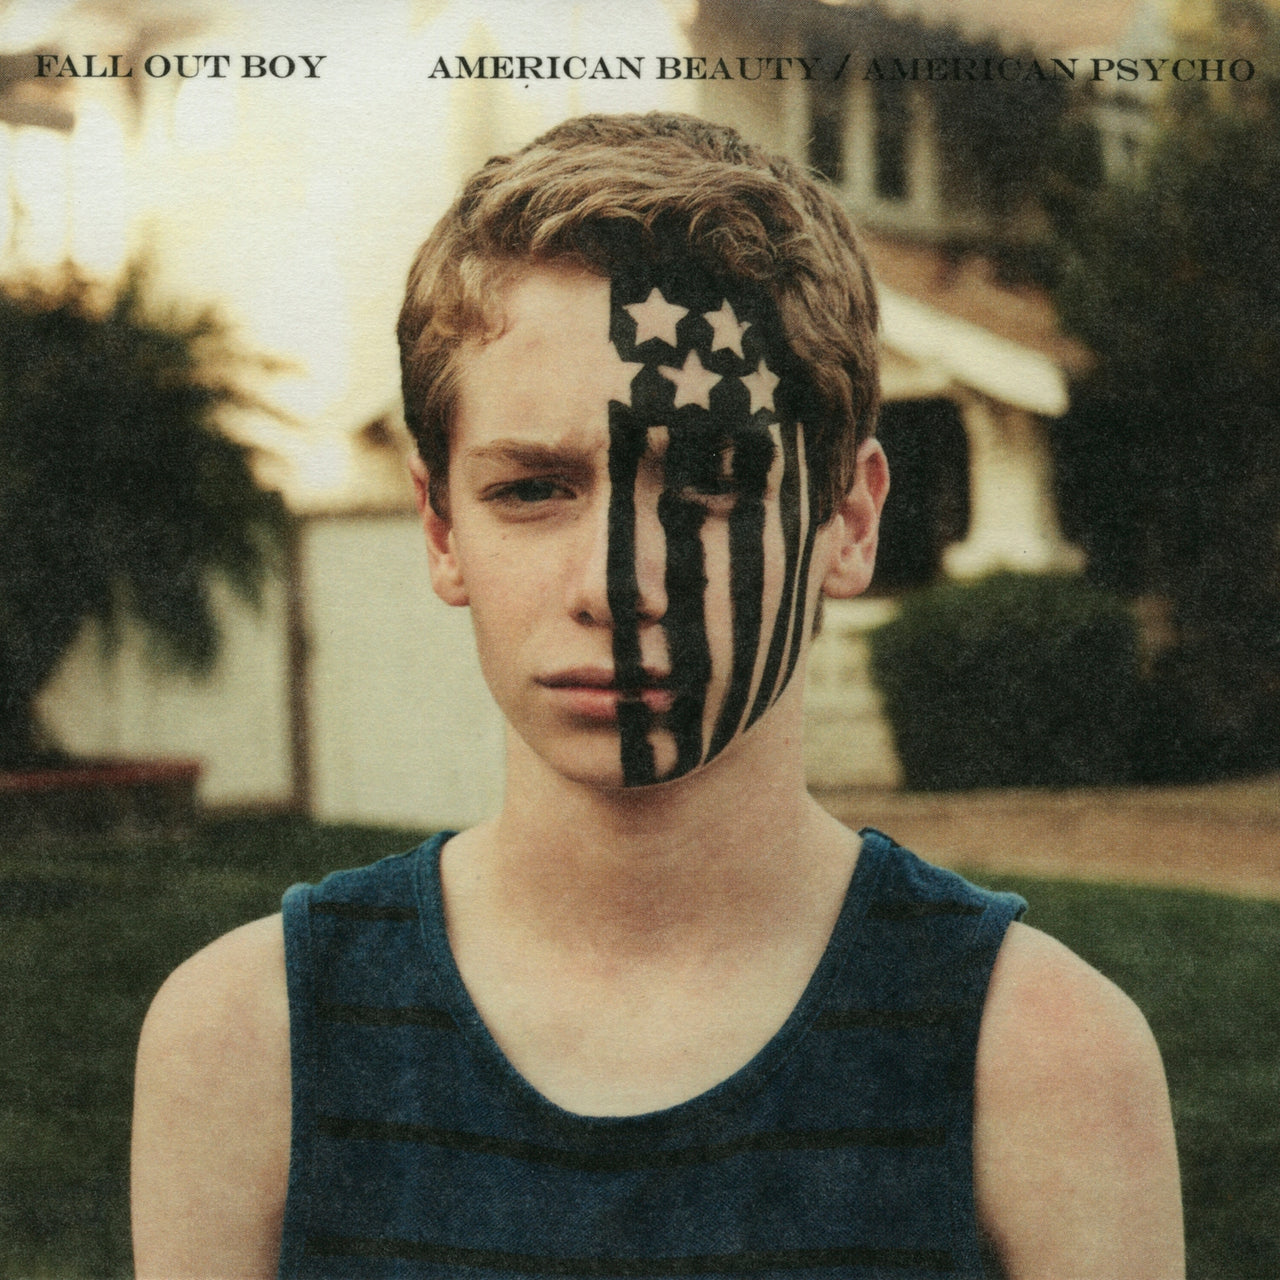 Fall Out Boy : American Beauty / American Psycho